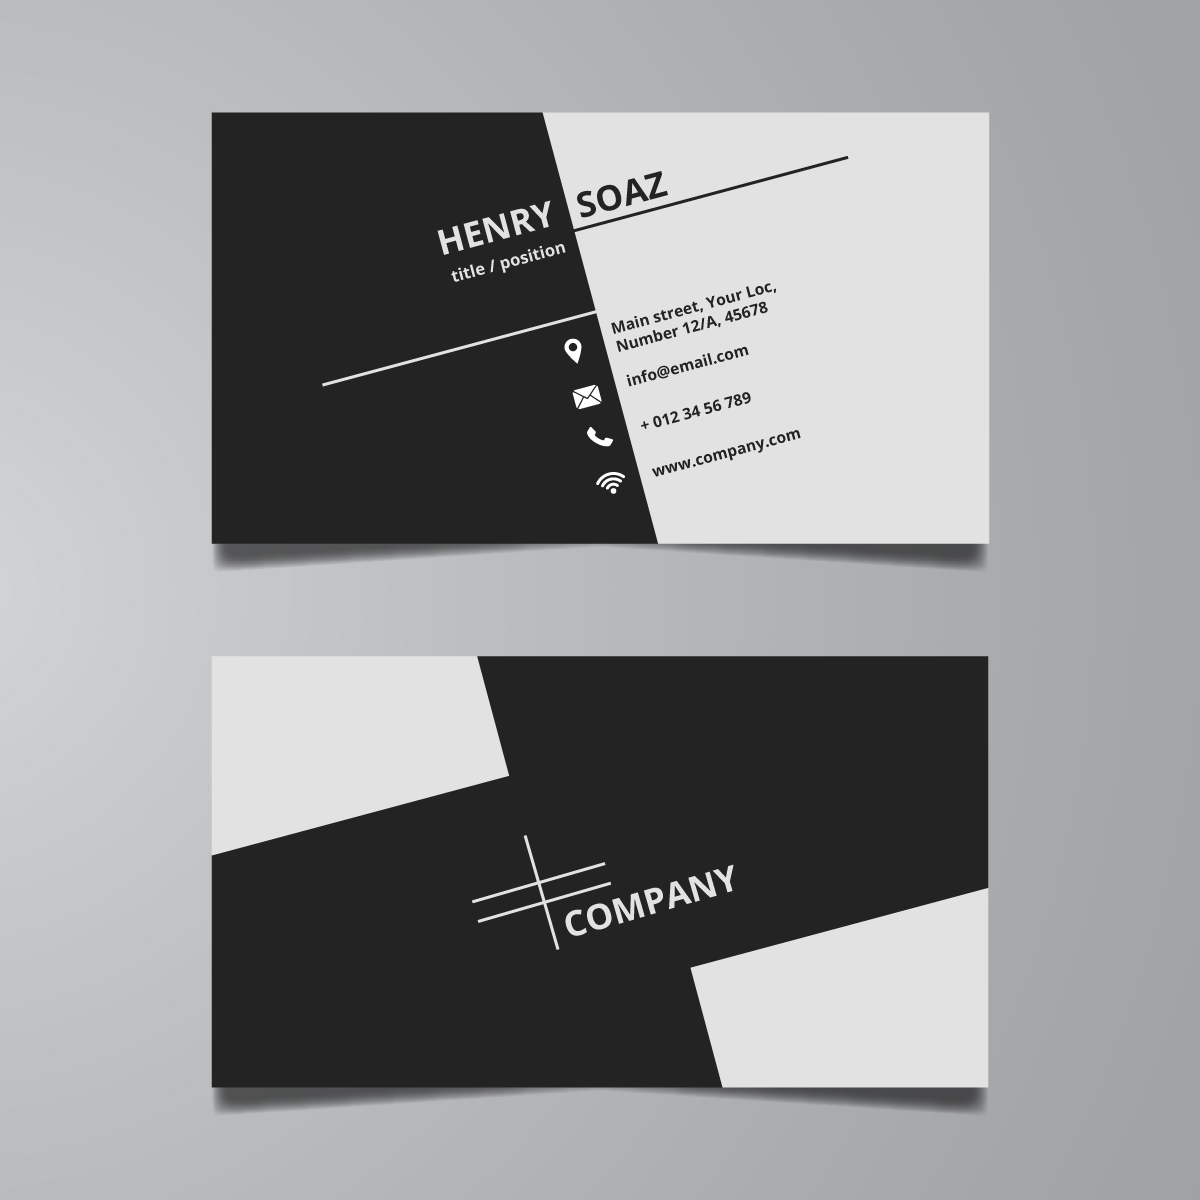 Provide Simple Professional Business Card Design in 24 hour